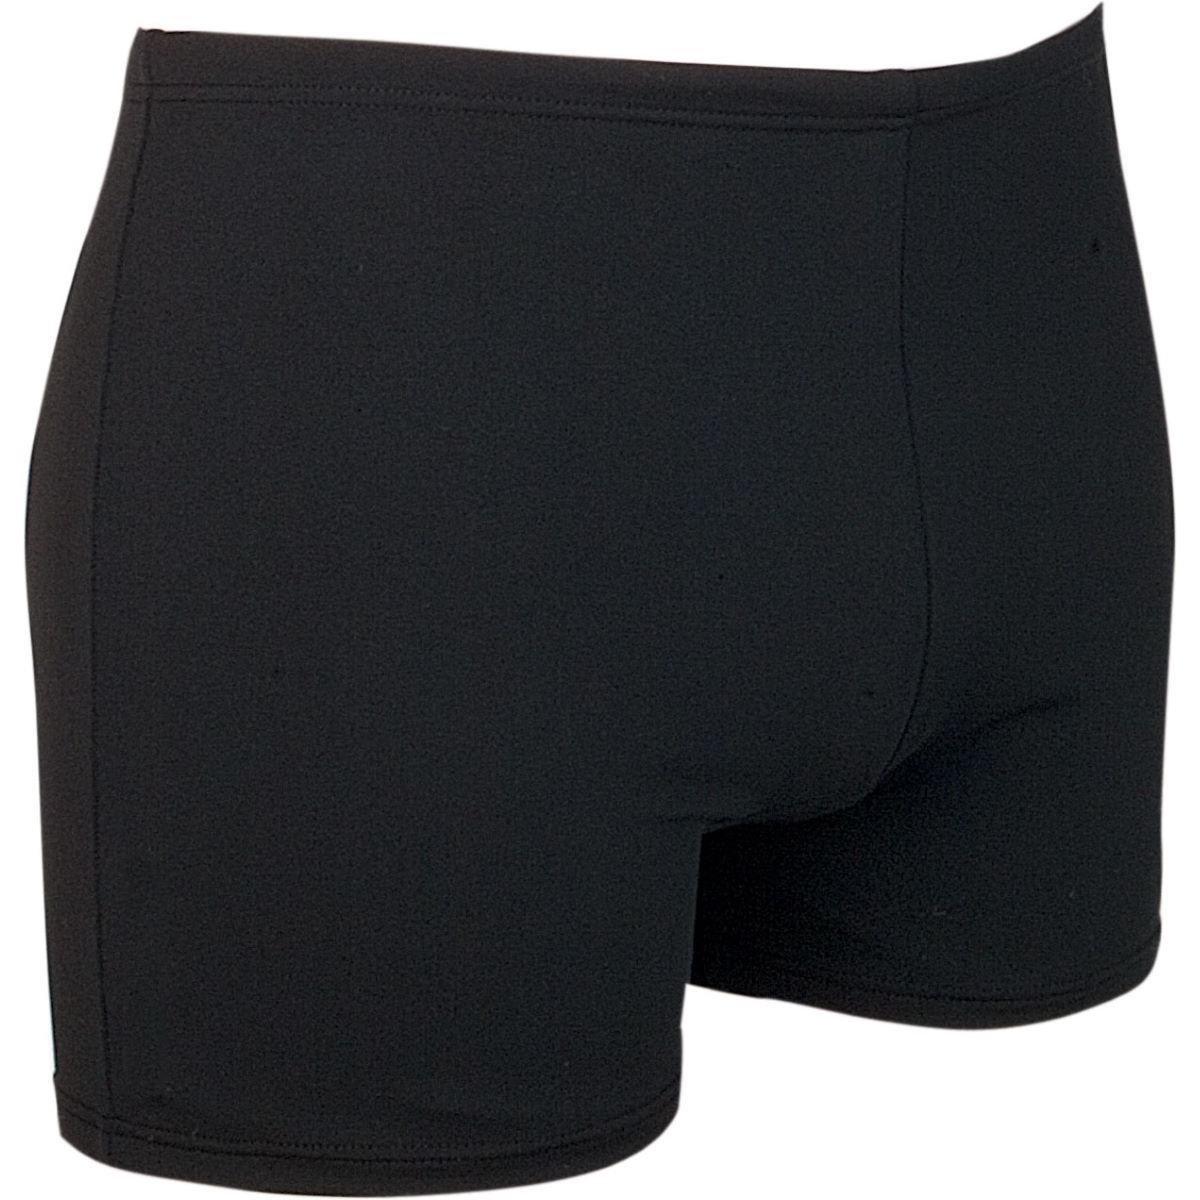 Zoggs Boys Cottesloe Hip  Racer - 10-11 Years Black  Swimming Shorts